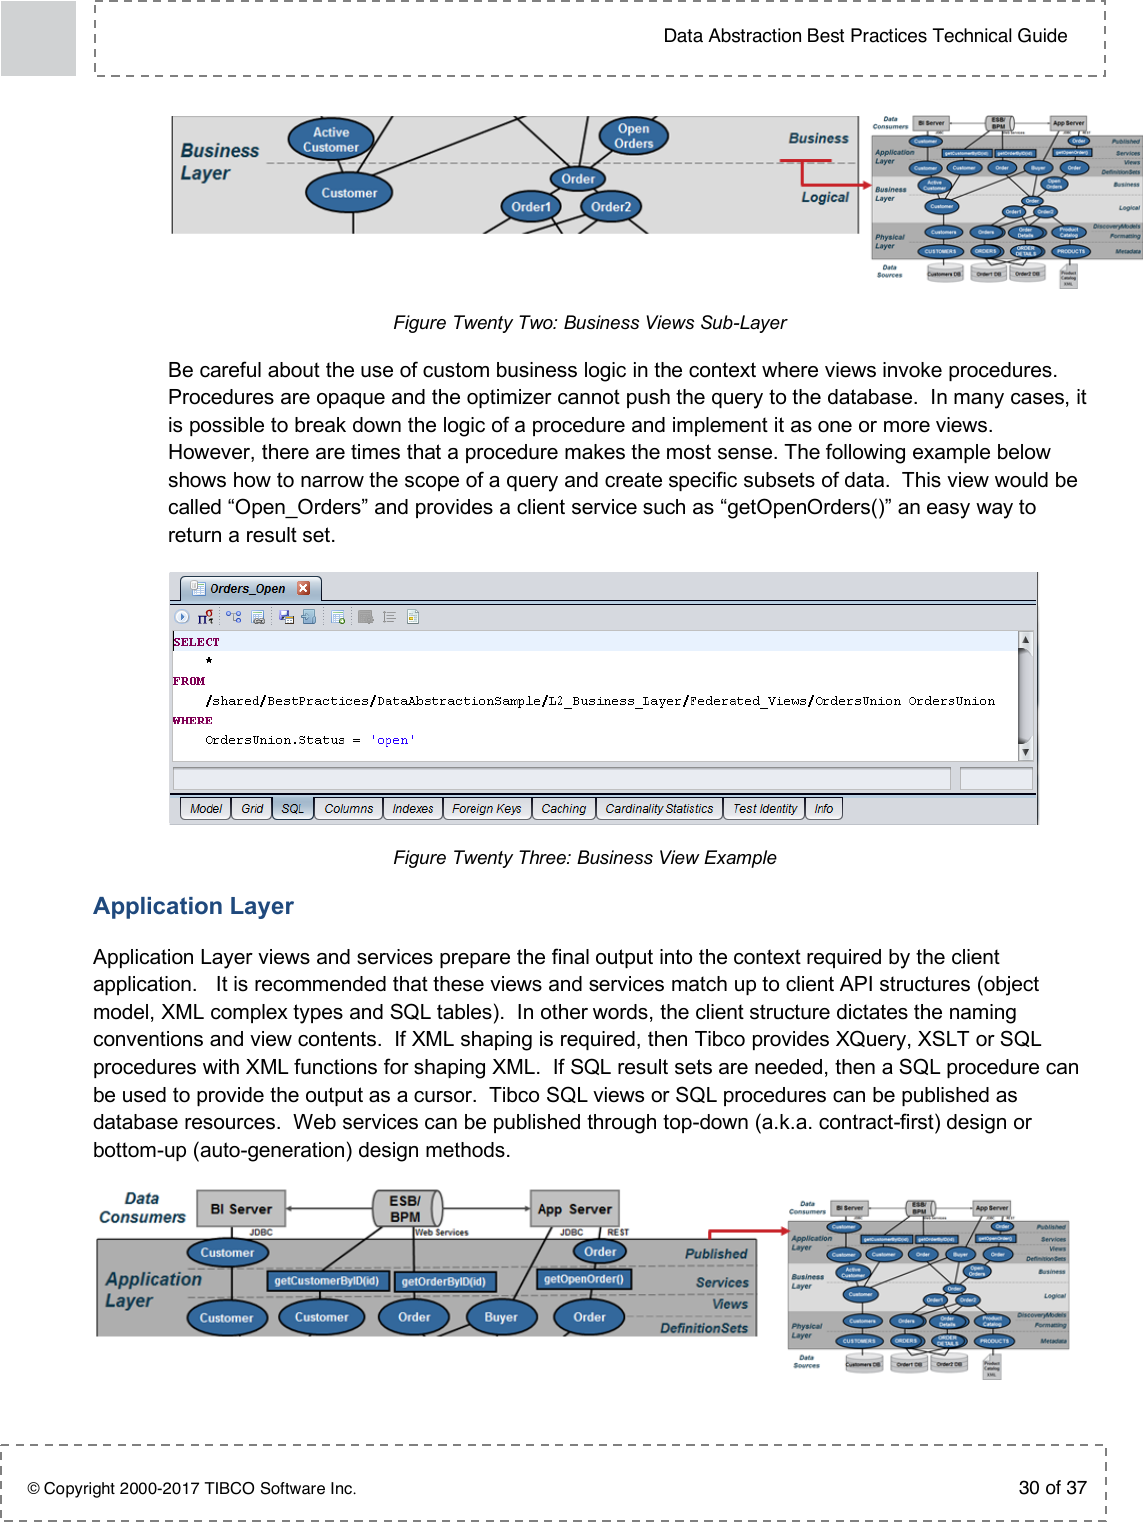 Tibco Data Abstraction Best Practices Technical Guide